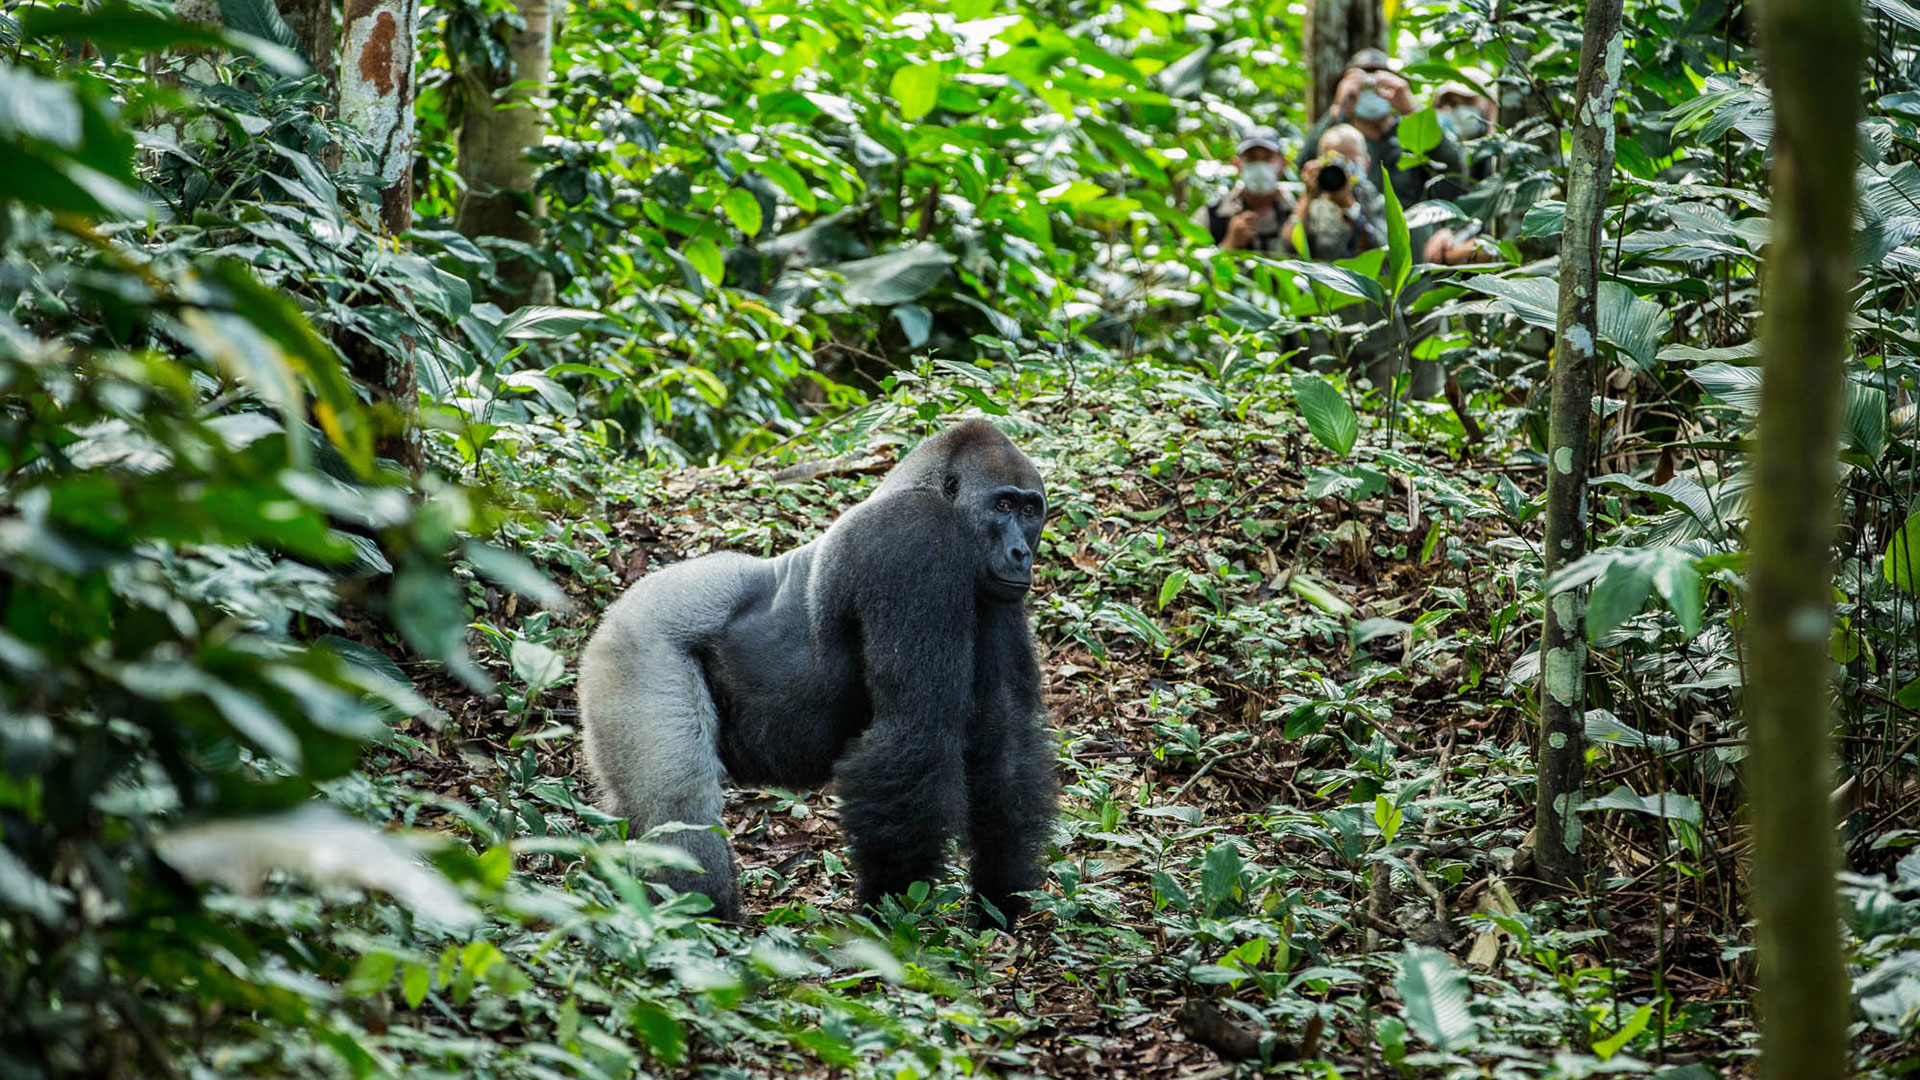 Western lowland gorilla silverback with group of trekkers in background